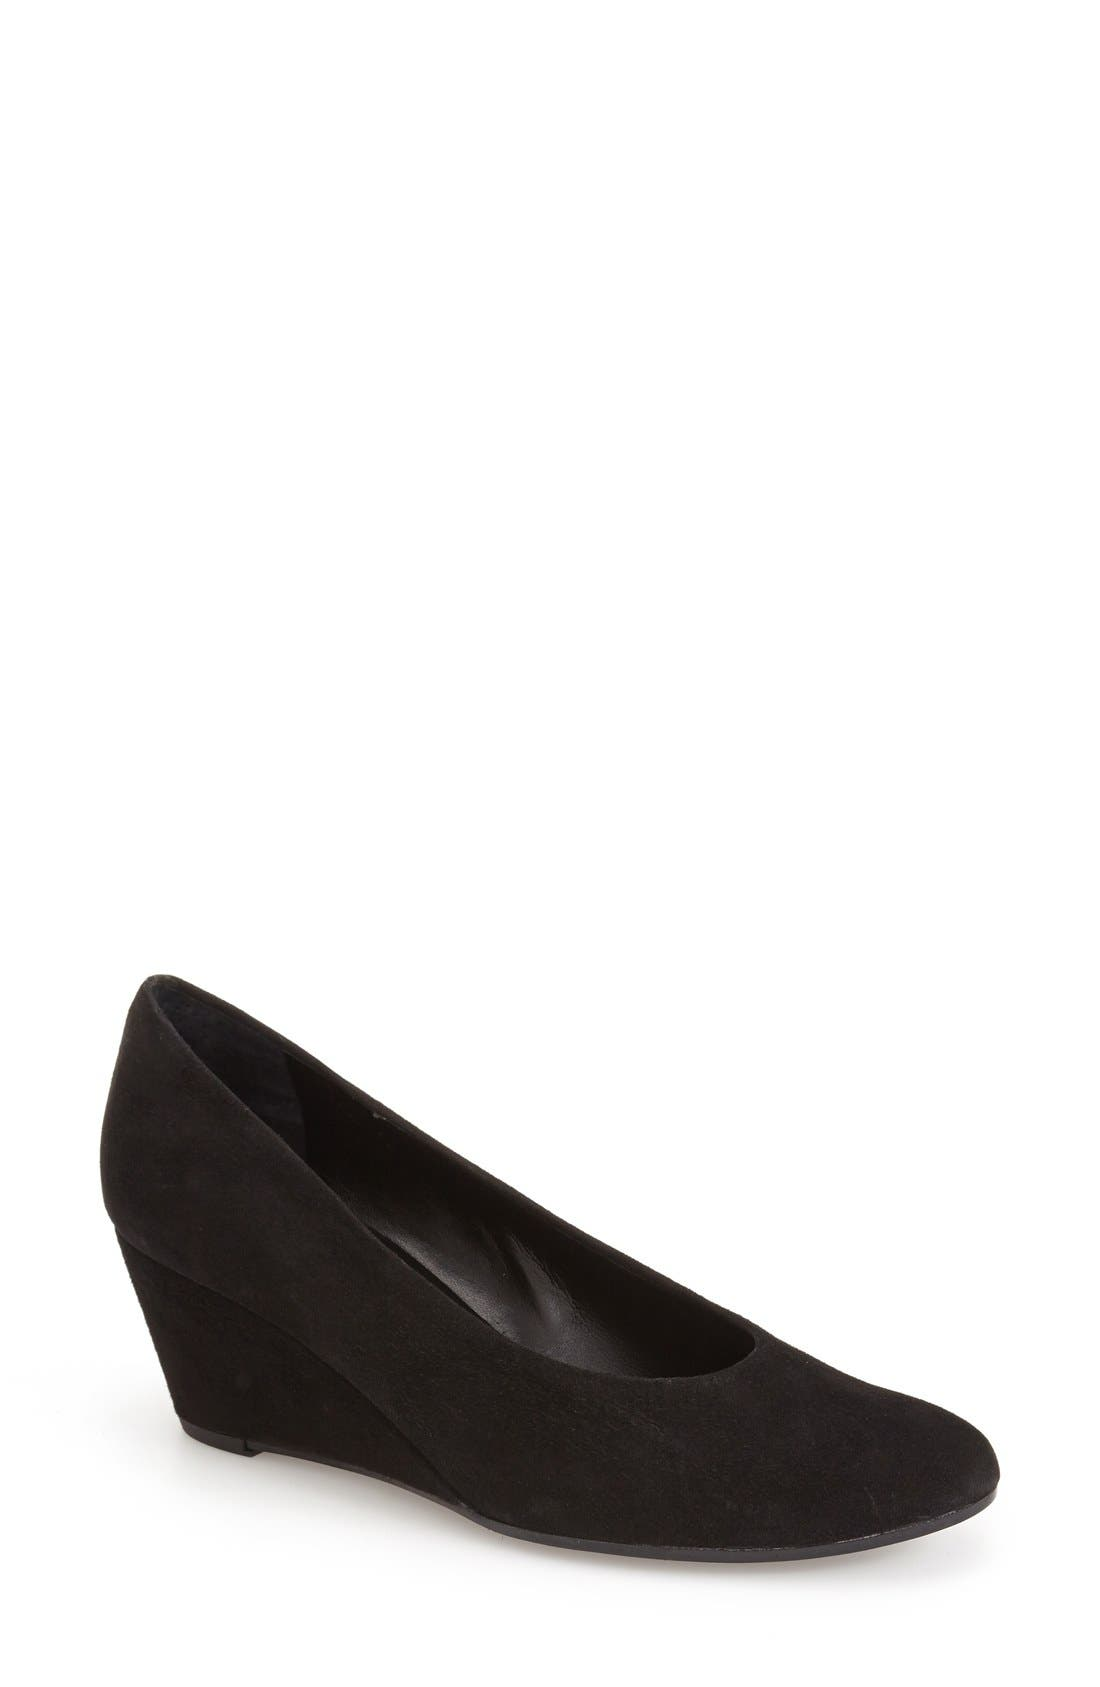 'Dilys' Wedge Pump,                             Main thumbnail 1, color,                             BLACK SUEDE